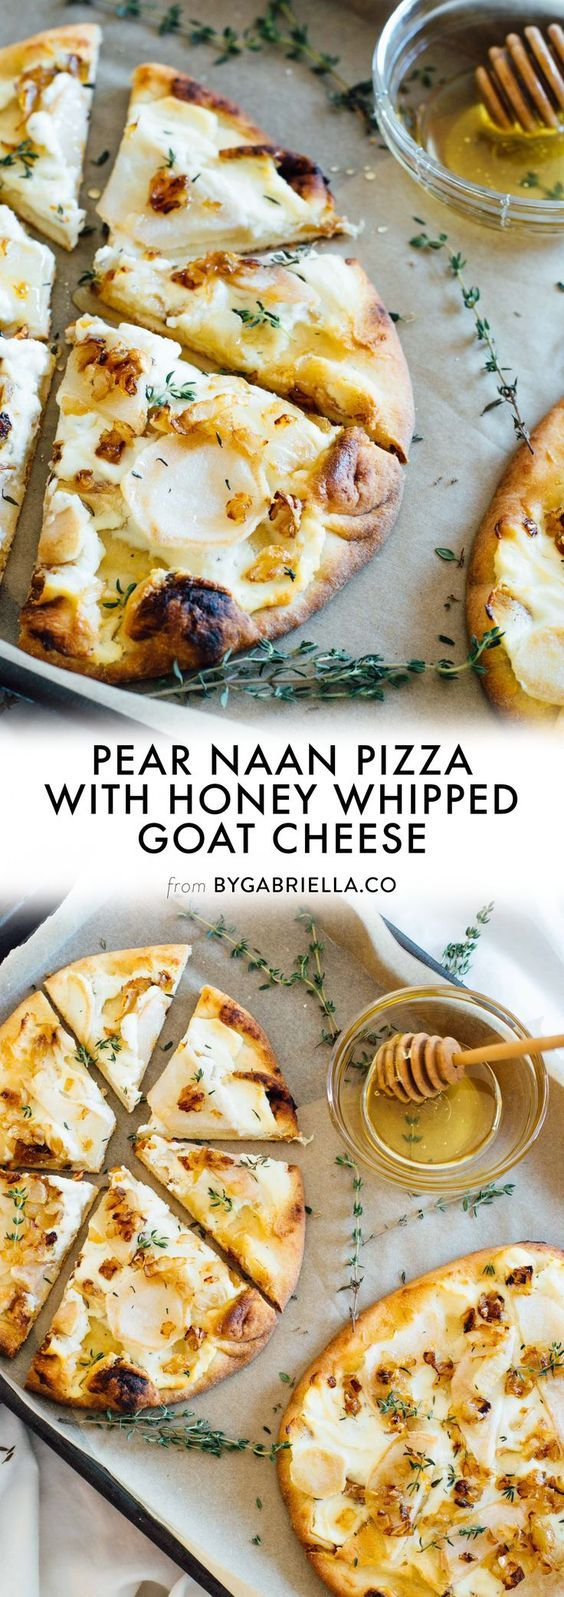 Photo of Pear Naan Pizza with Honey Whipped Goat Cheese